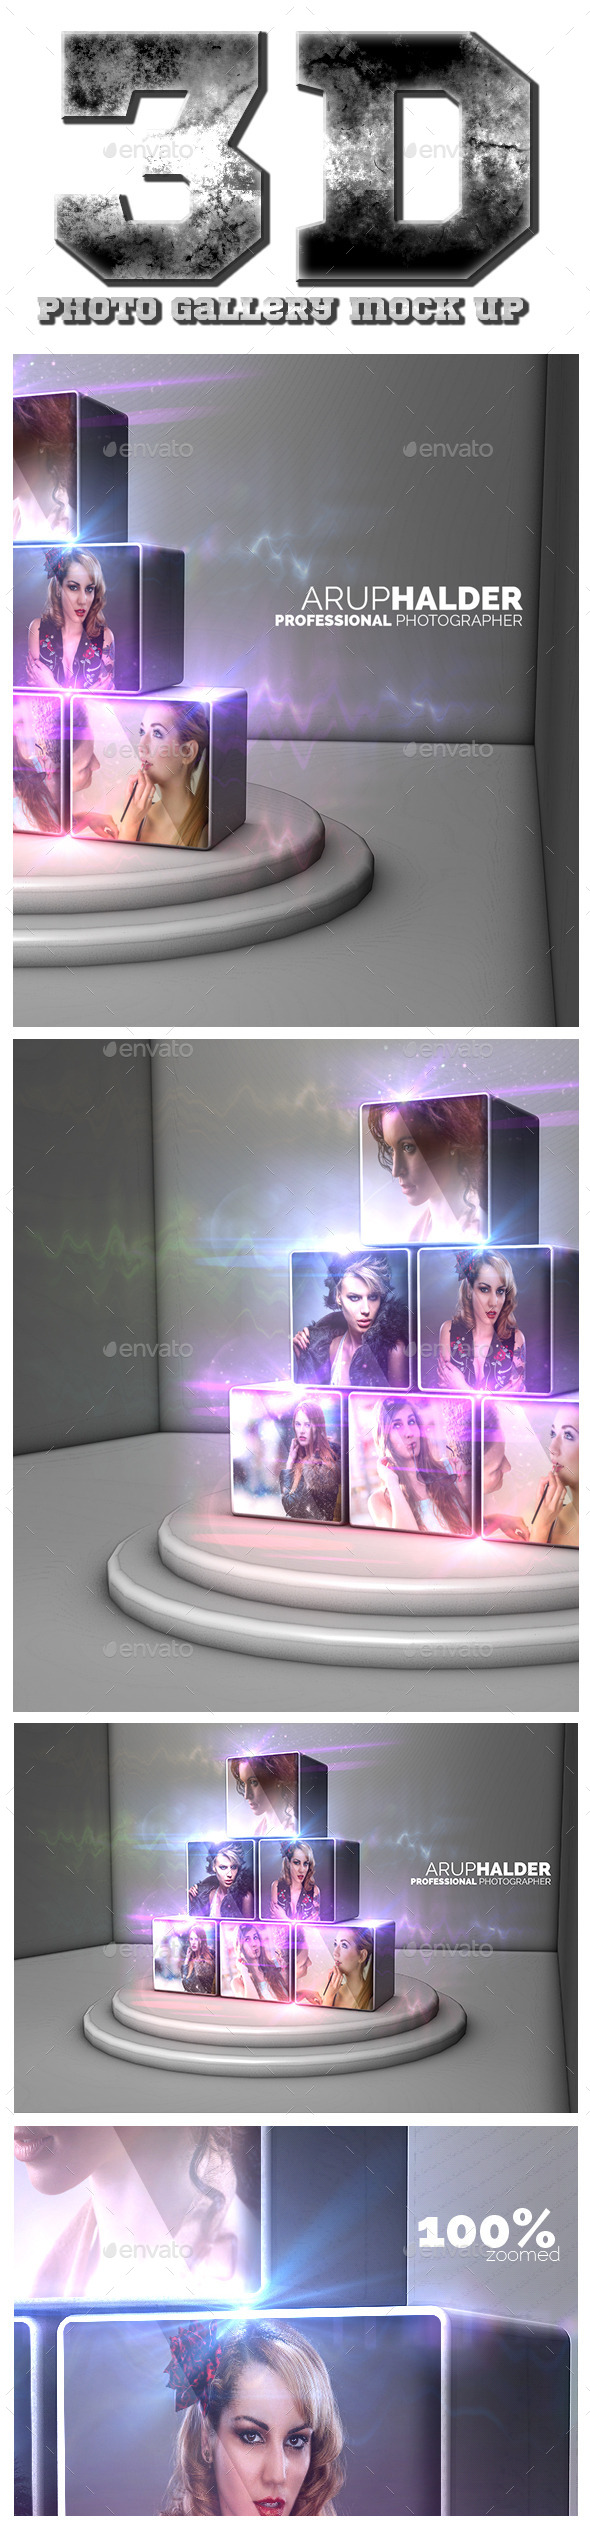 GraphicRiver 3D Photo Gallery Mock Up 11308803